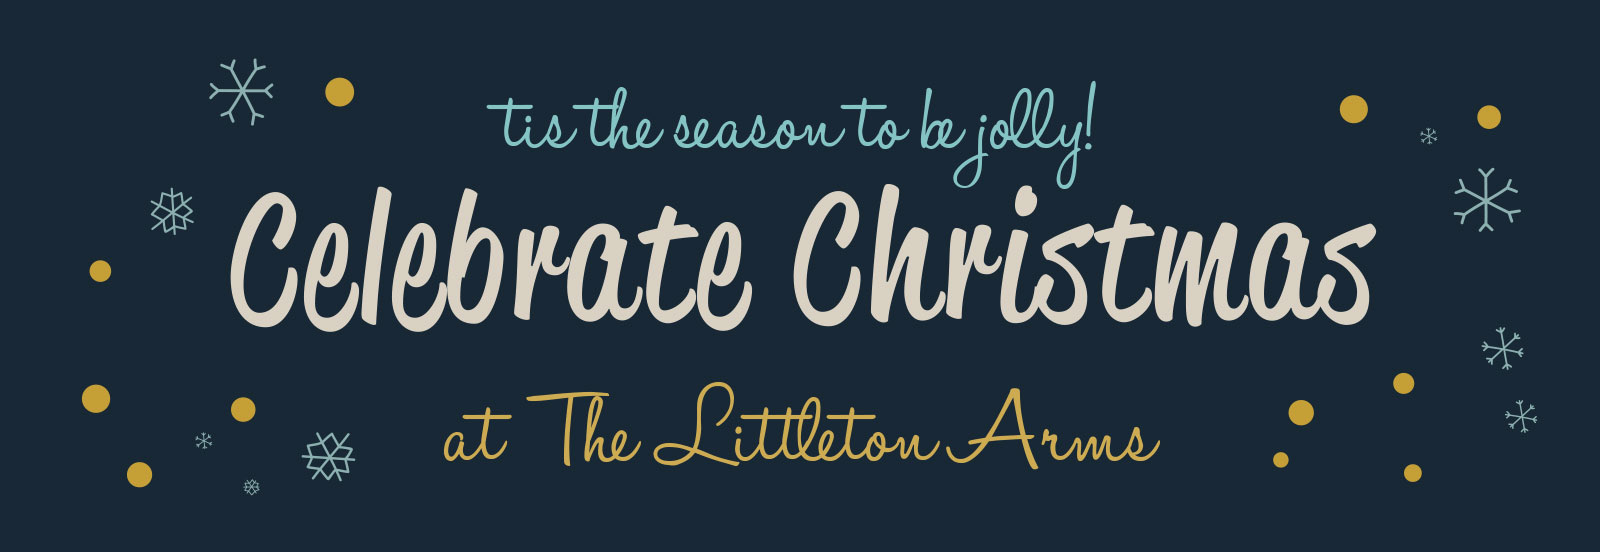 Celebrate Christmas at The Littleton Arms